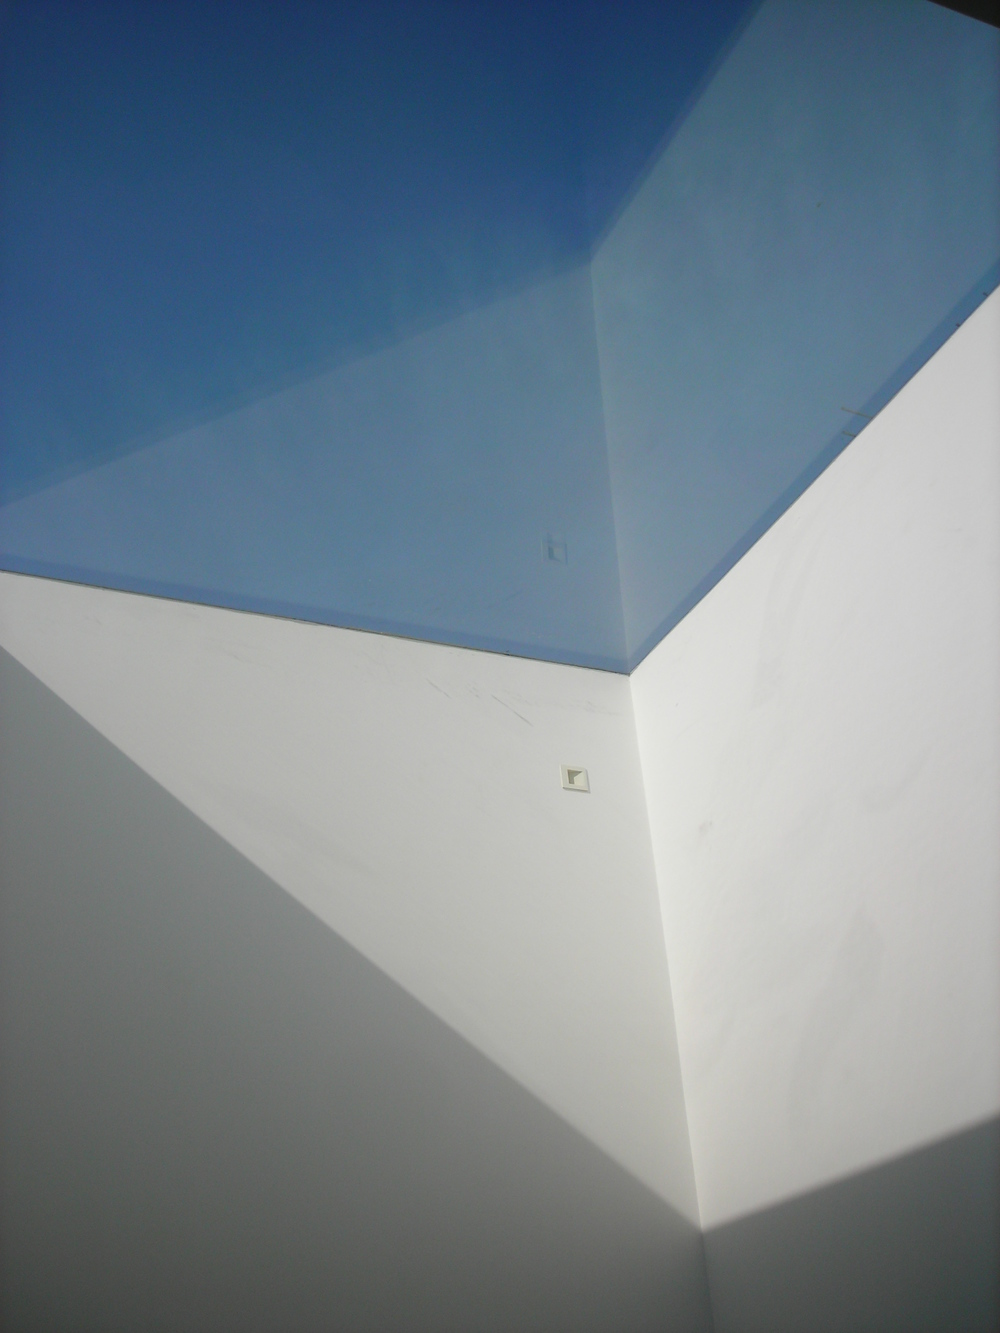 roof light for good daylighting.JPG